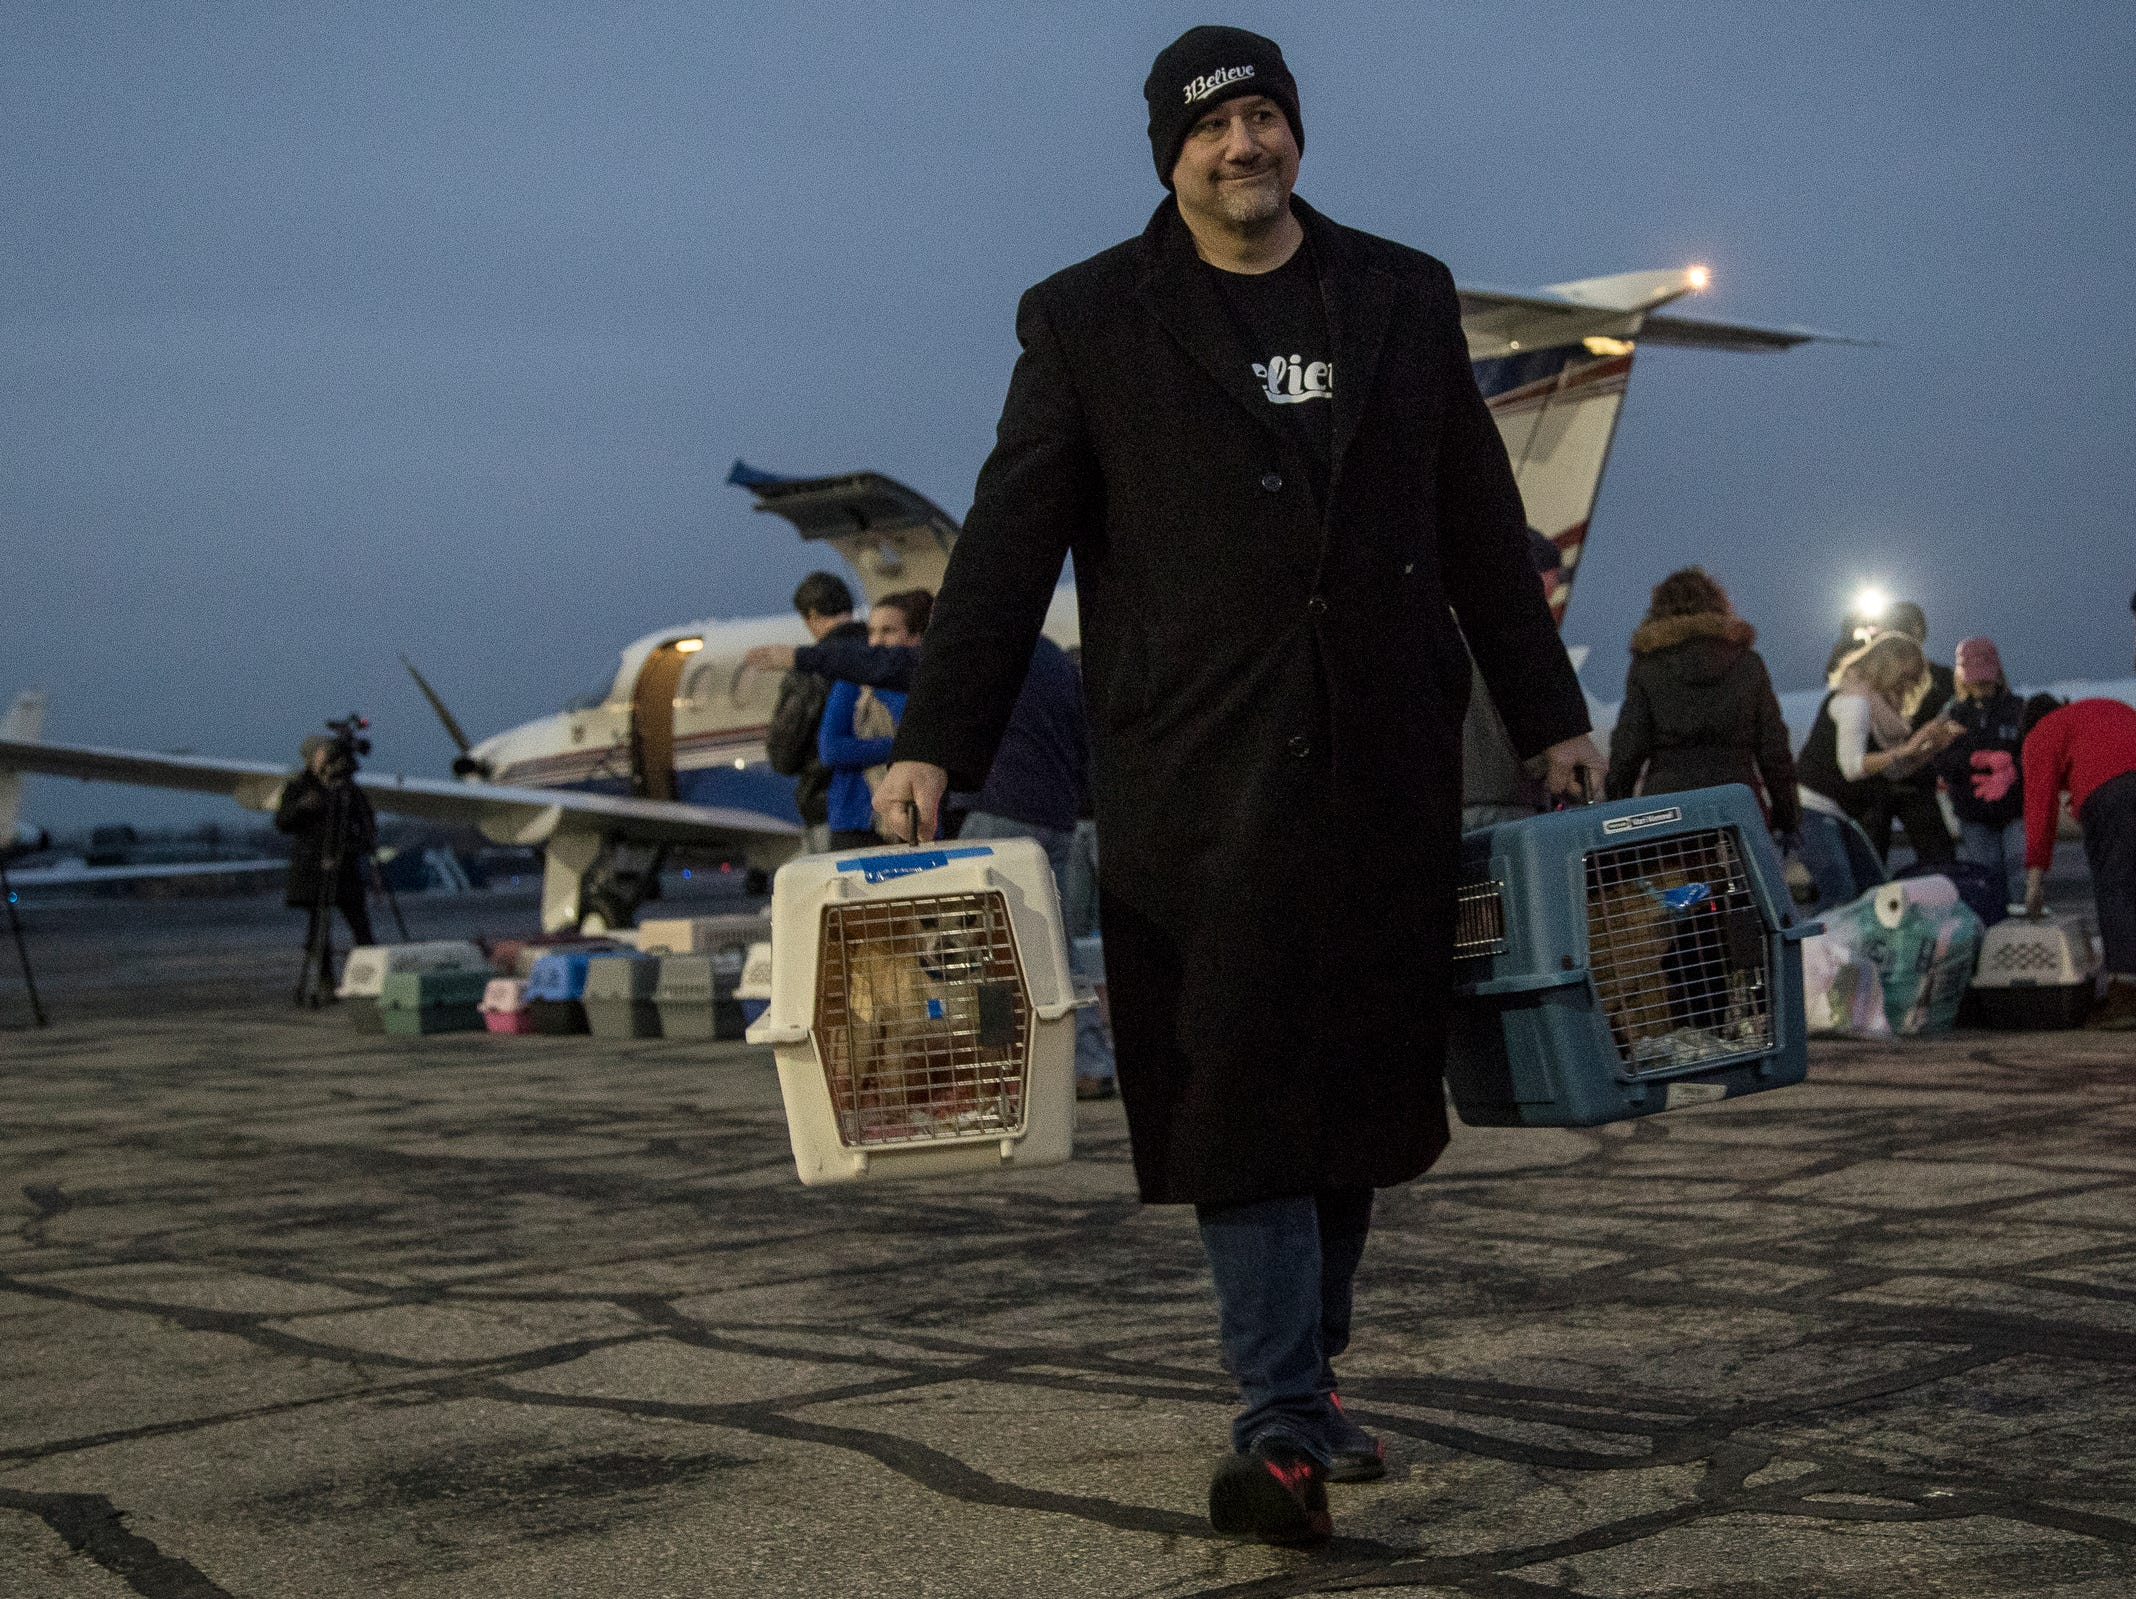 Harry Berberian of Southfield carries two crates of rescue dogs off the plane at Willow Run Airport in Ypsilanti Township, Thursday, Feb. 14, 2019. Around 91 rescue dogs flew in from Fresno, Calif. to get adopted at one of the metro Detroit Michigan Humane Society facilities.